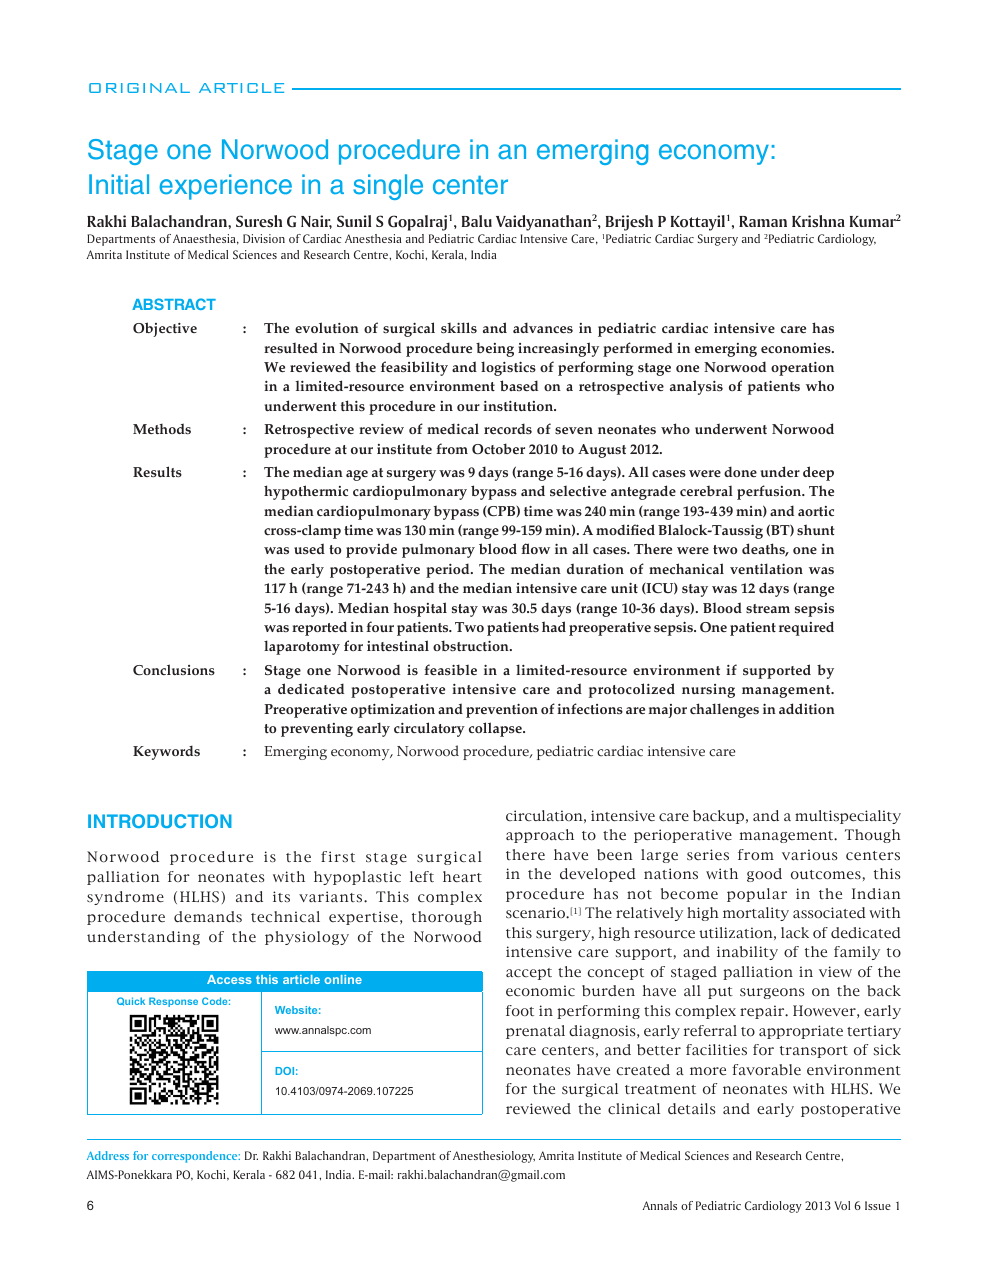 Stage One Norwood Procedure In An Emerging Economy Initial Experience In A Single Center Topic Of Research Paper In Clinical Medicine Download Scholarly Article Pdf And Read For Free On Cyberleninka Open